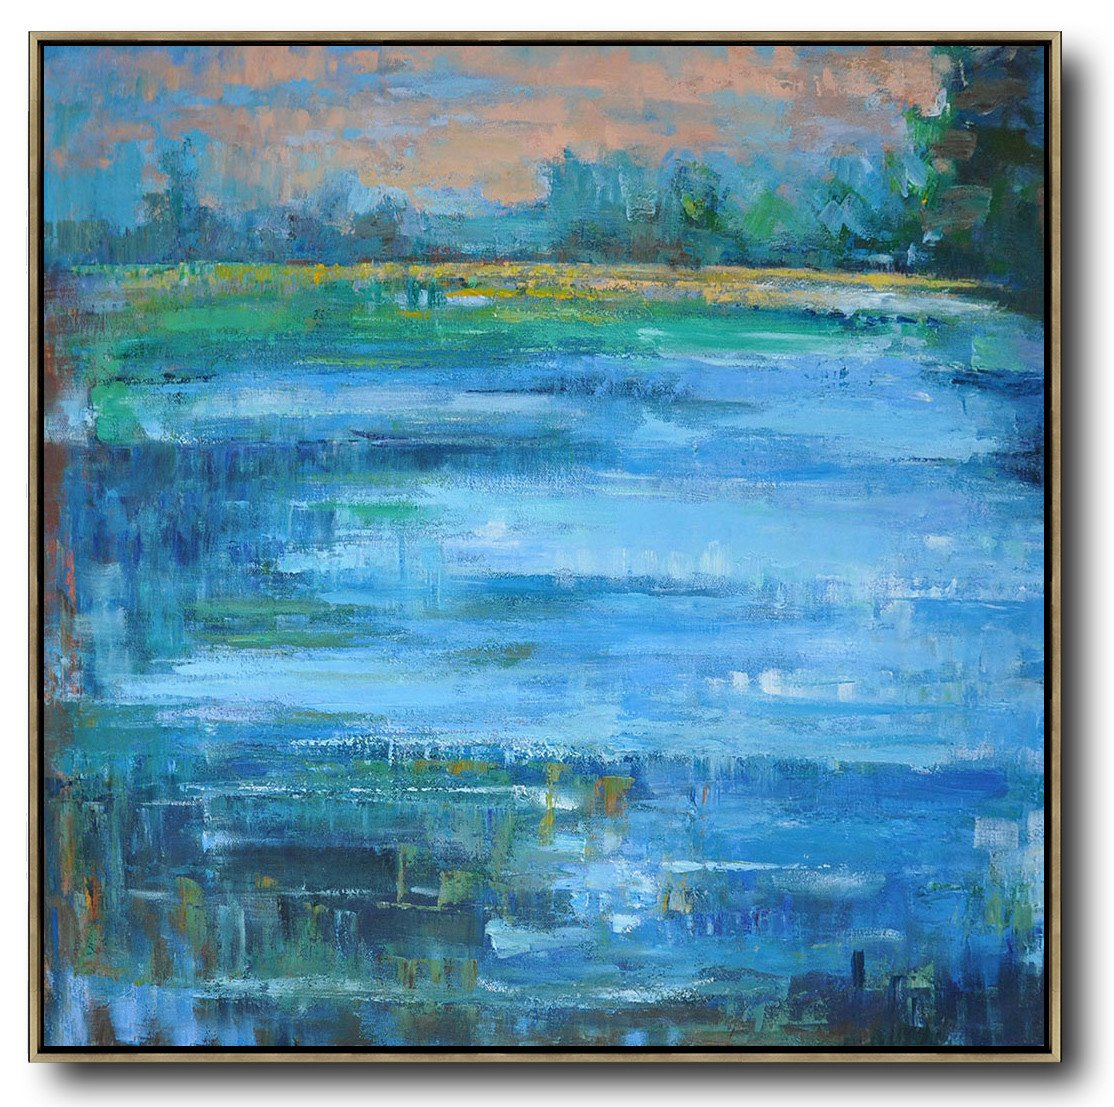 Hand Made Abstract Art,Abstract Landscape Oil Painting,Acrylic Painting On Canvas,Earthy Yellow ,Blue,Green.etc